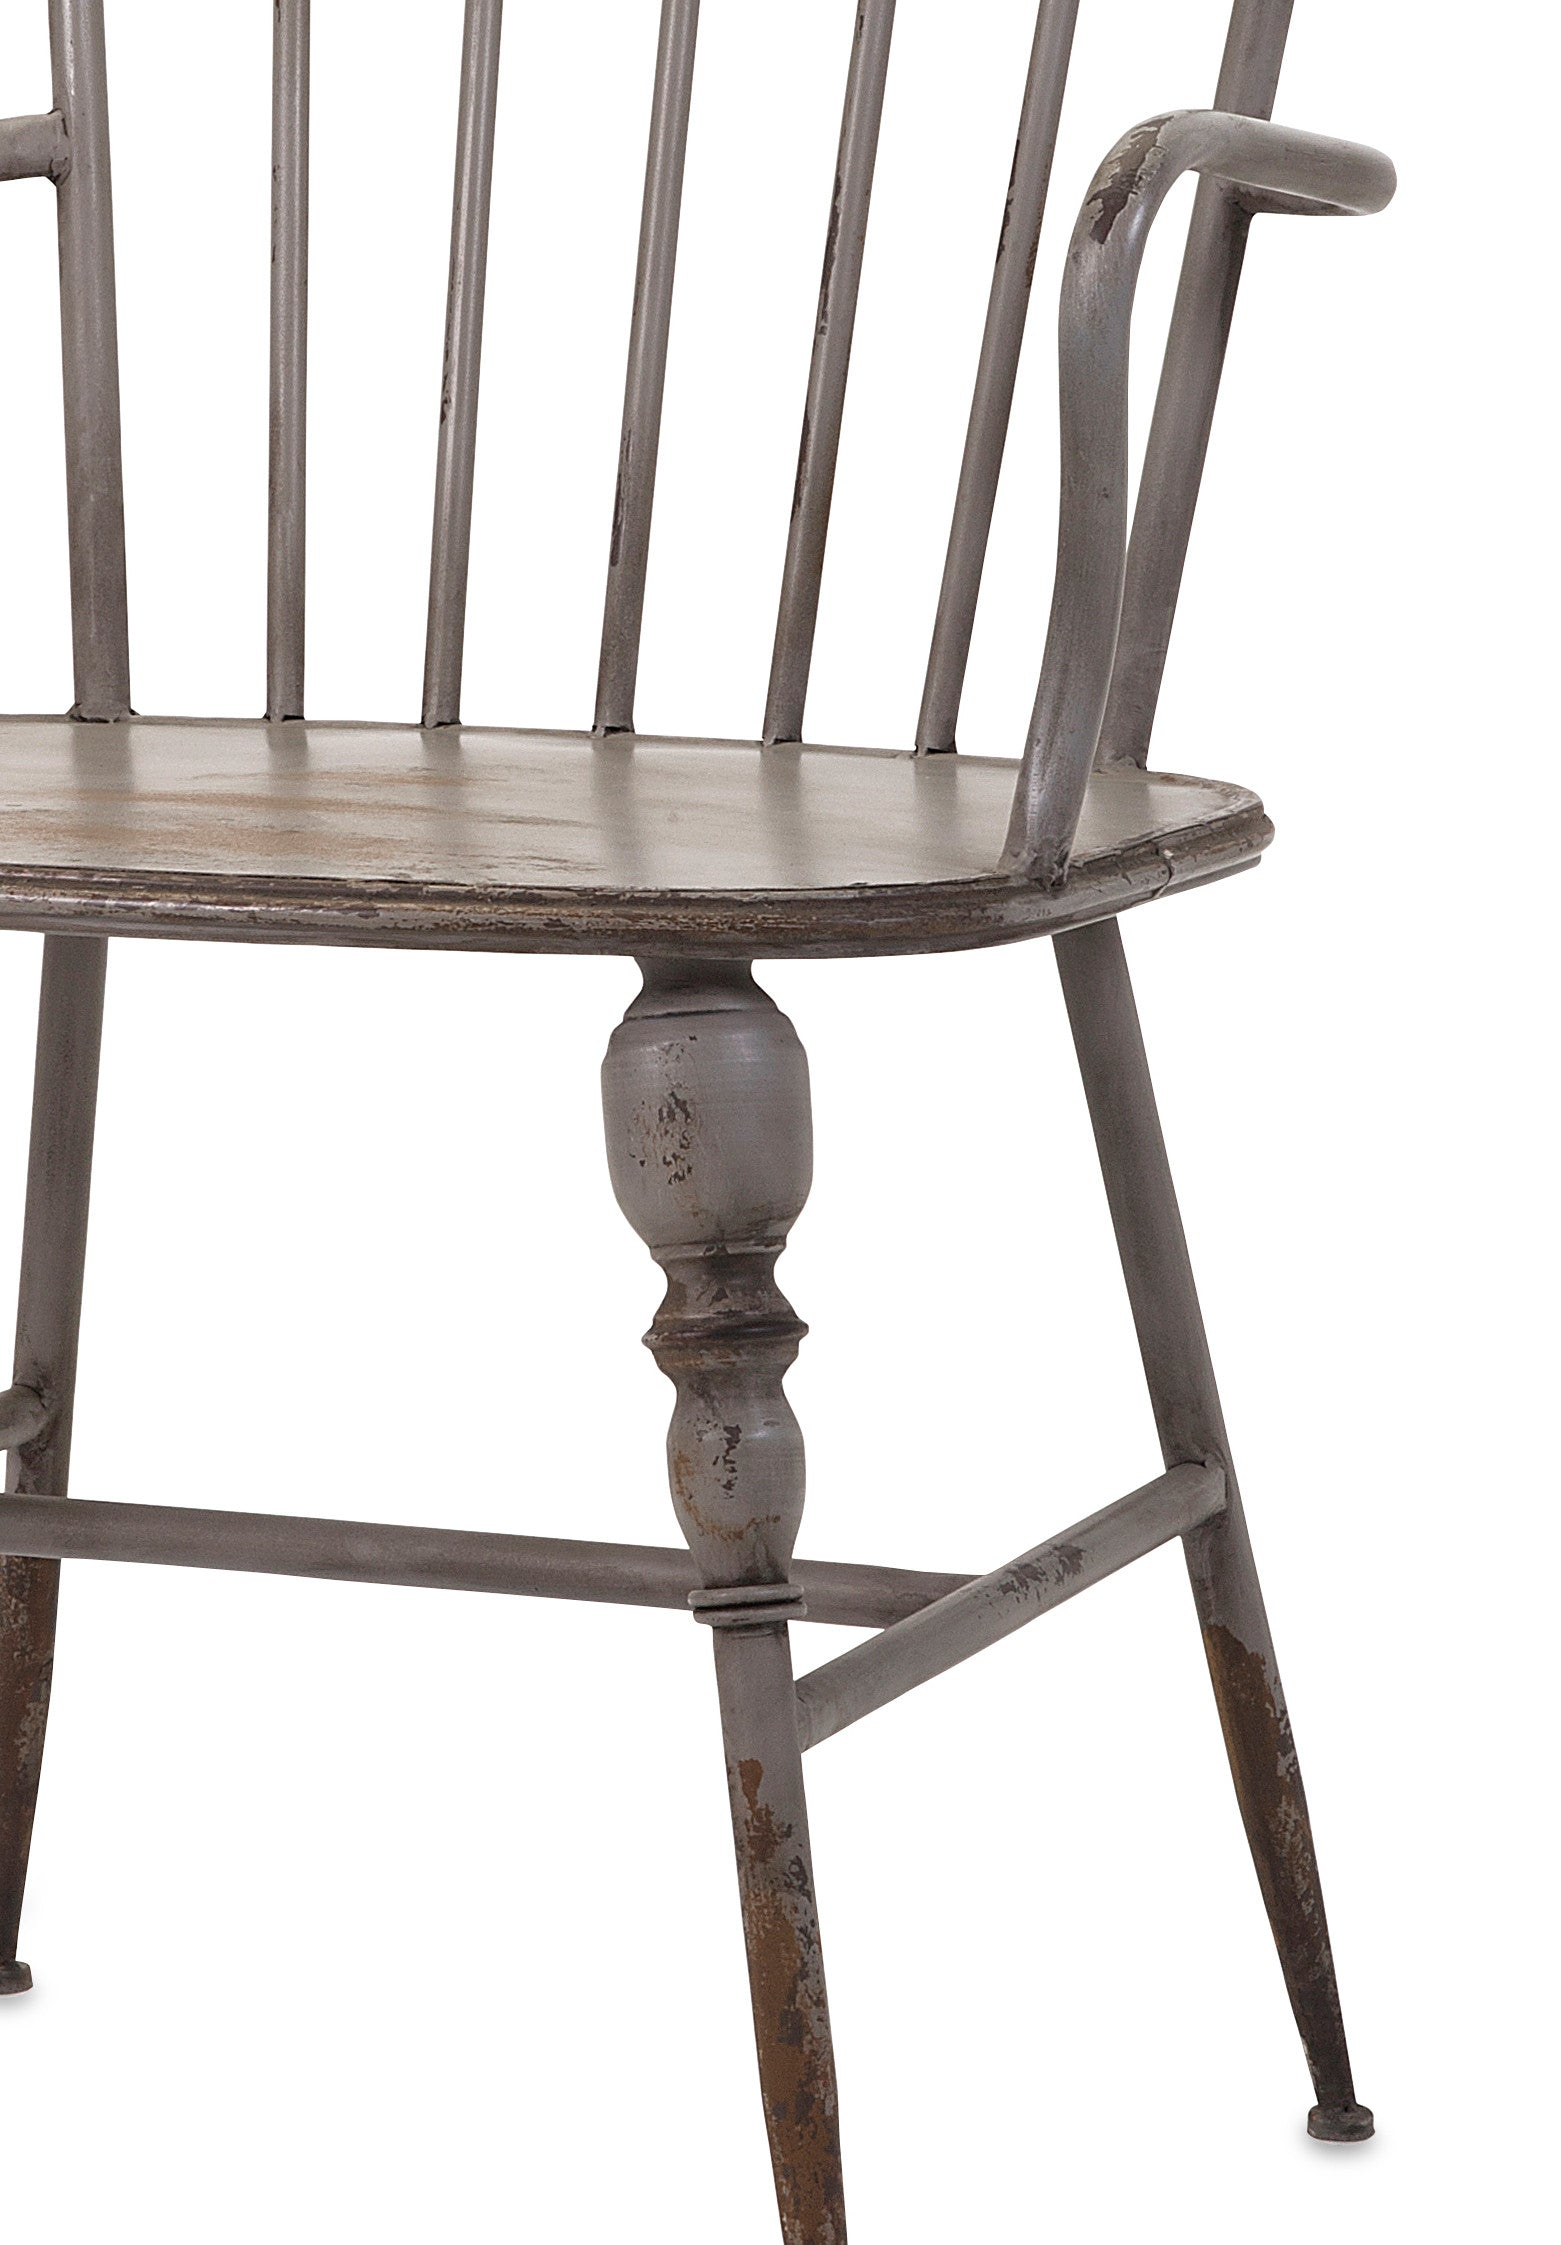 Rustic Gray Metal Farmhouse Industrial Modern Arm Chairs Set of